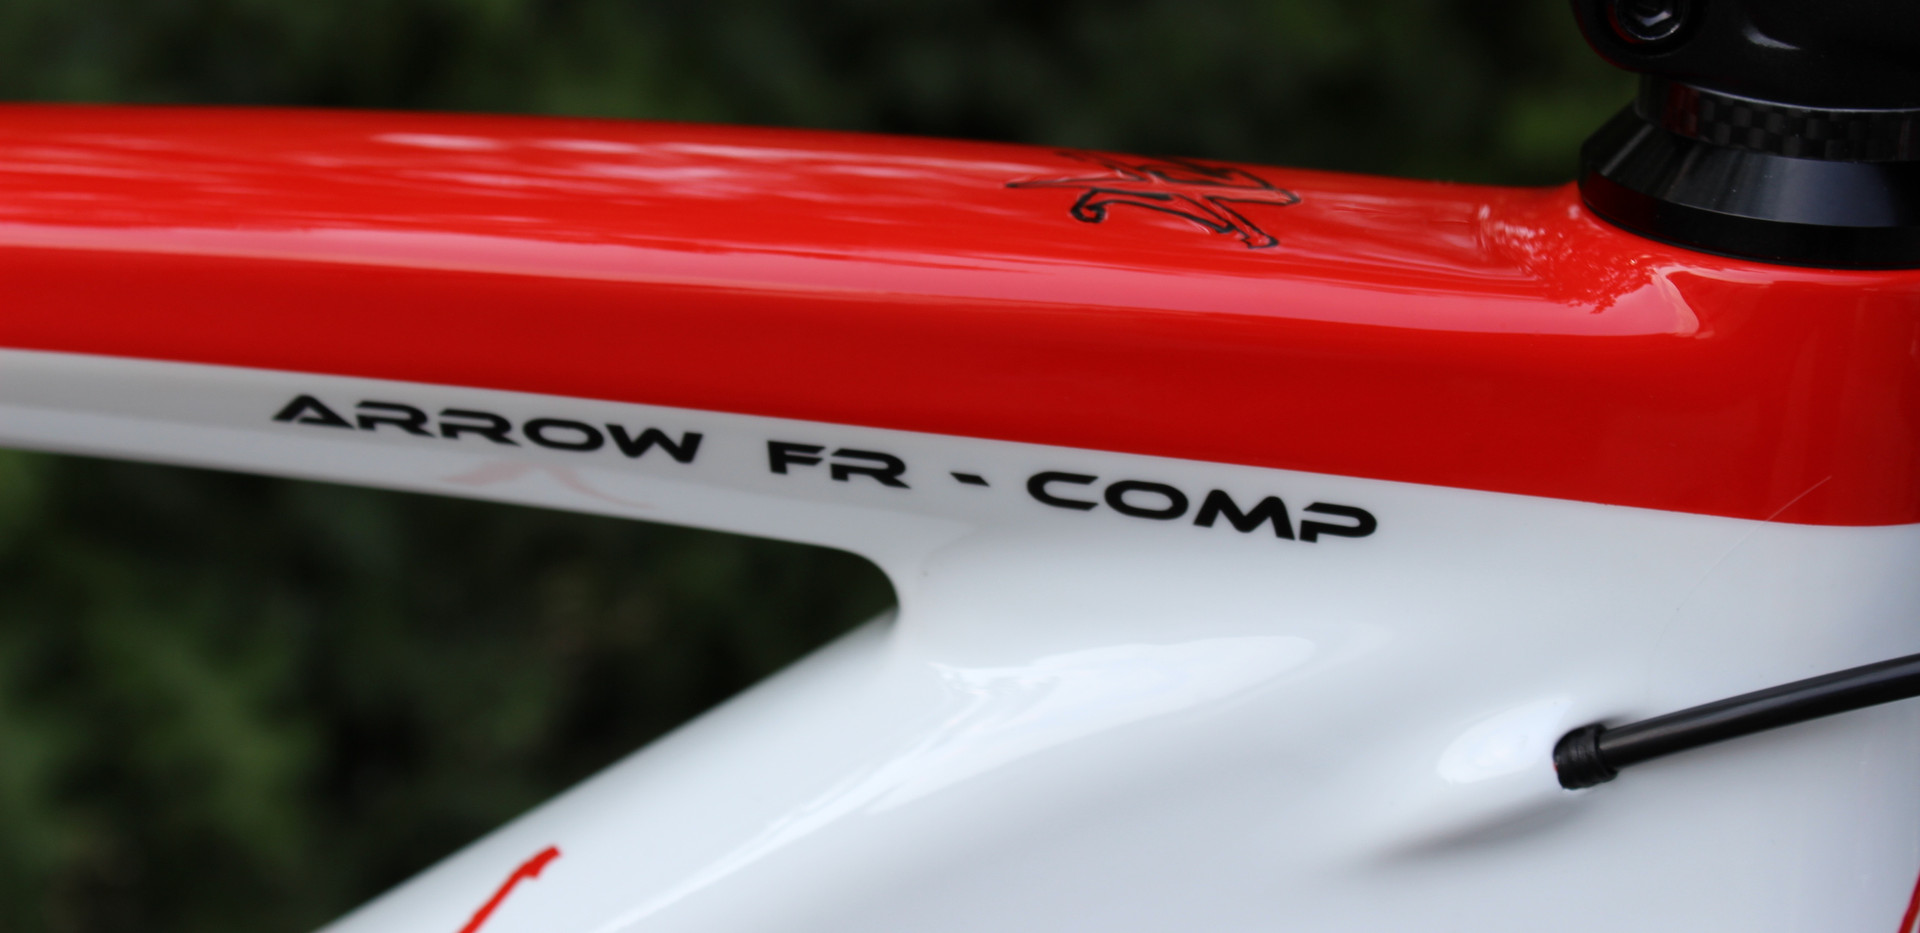 650B bianco rosso front 03